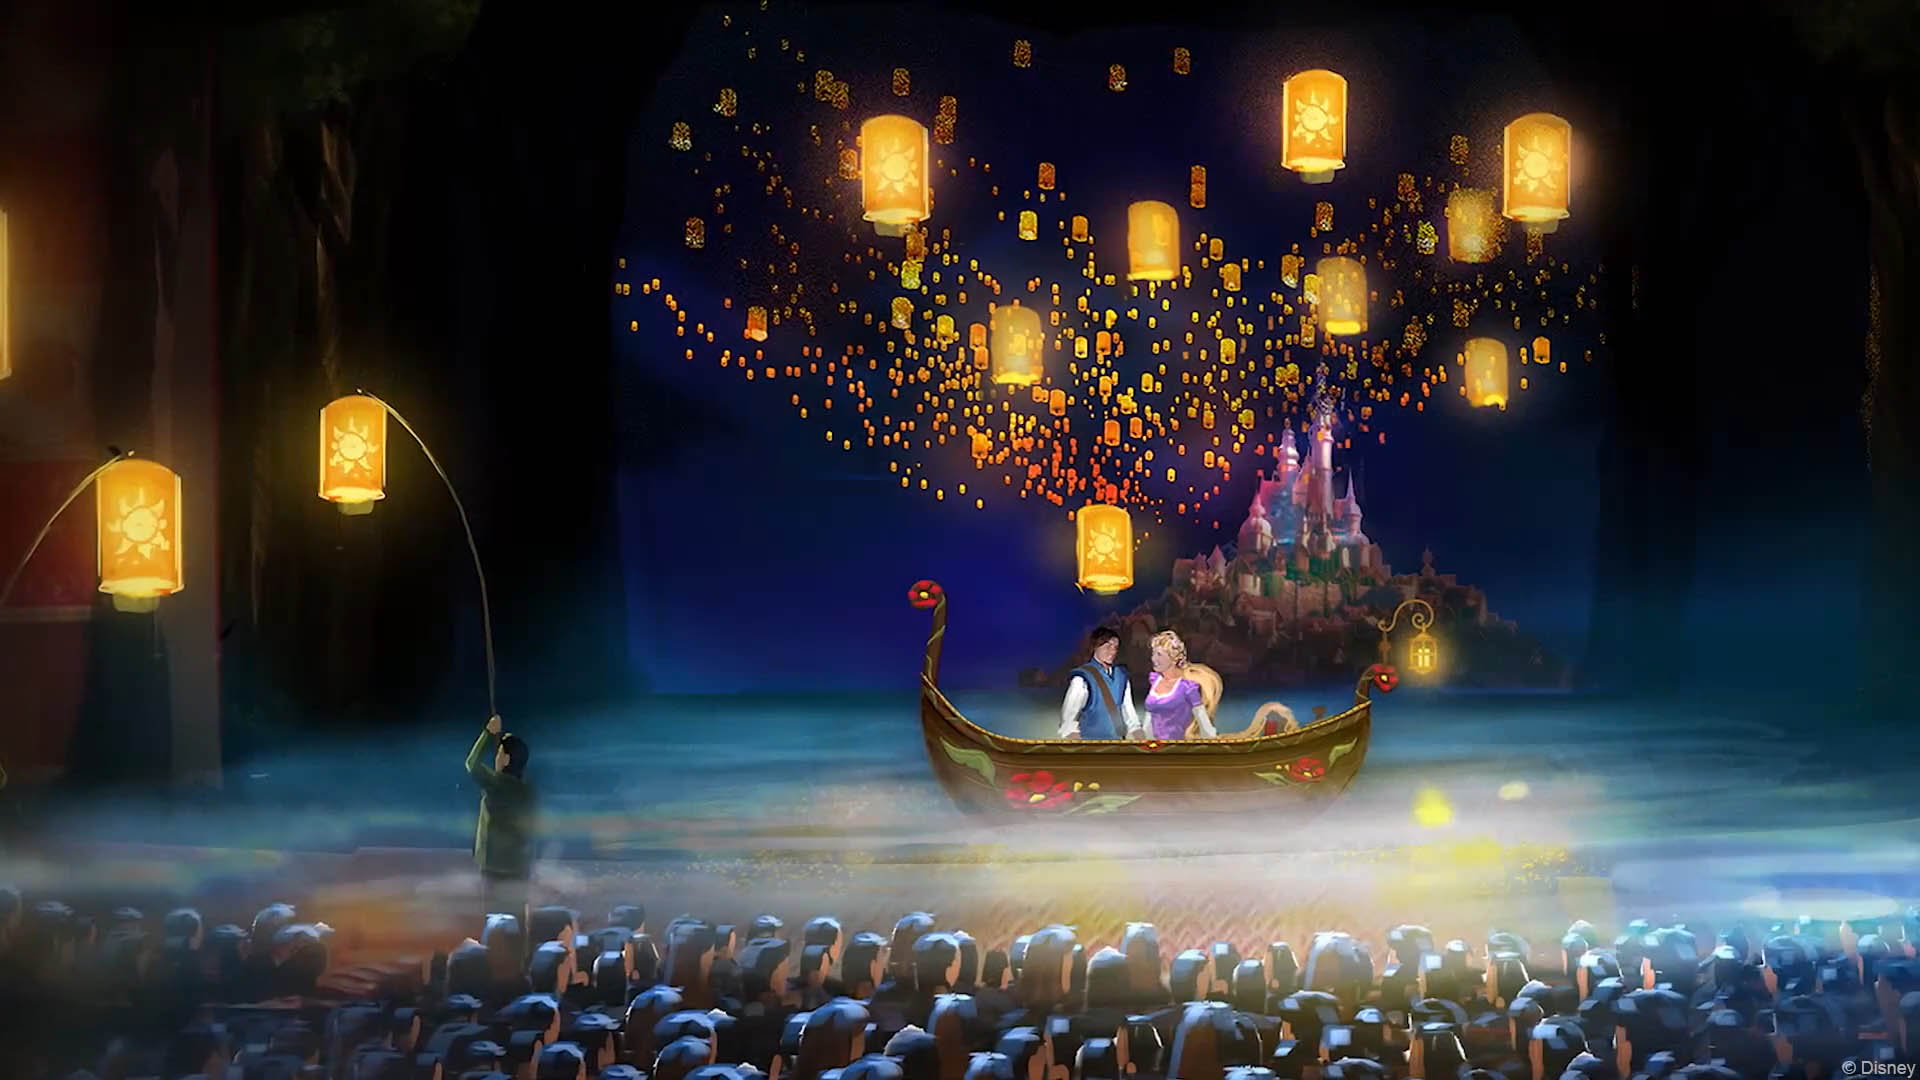 Dream Quotes Wallpaper 1080p A Closer Look At The Set Designs For Tangled The Musical